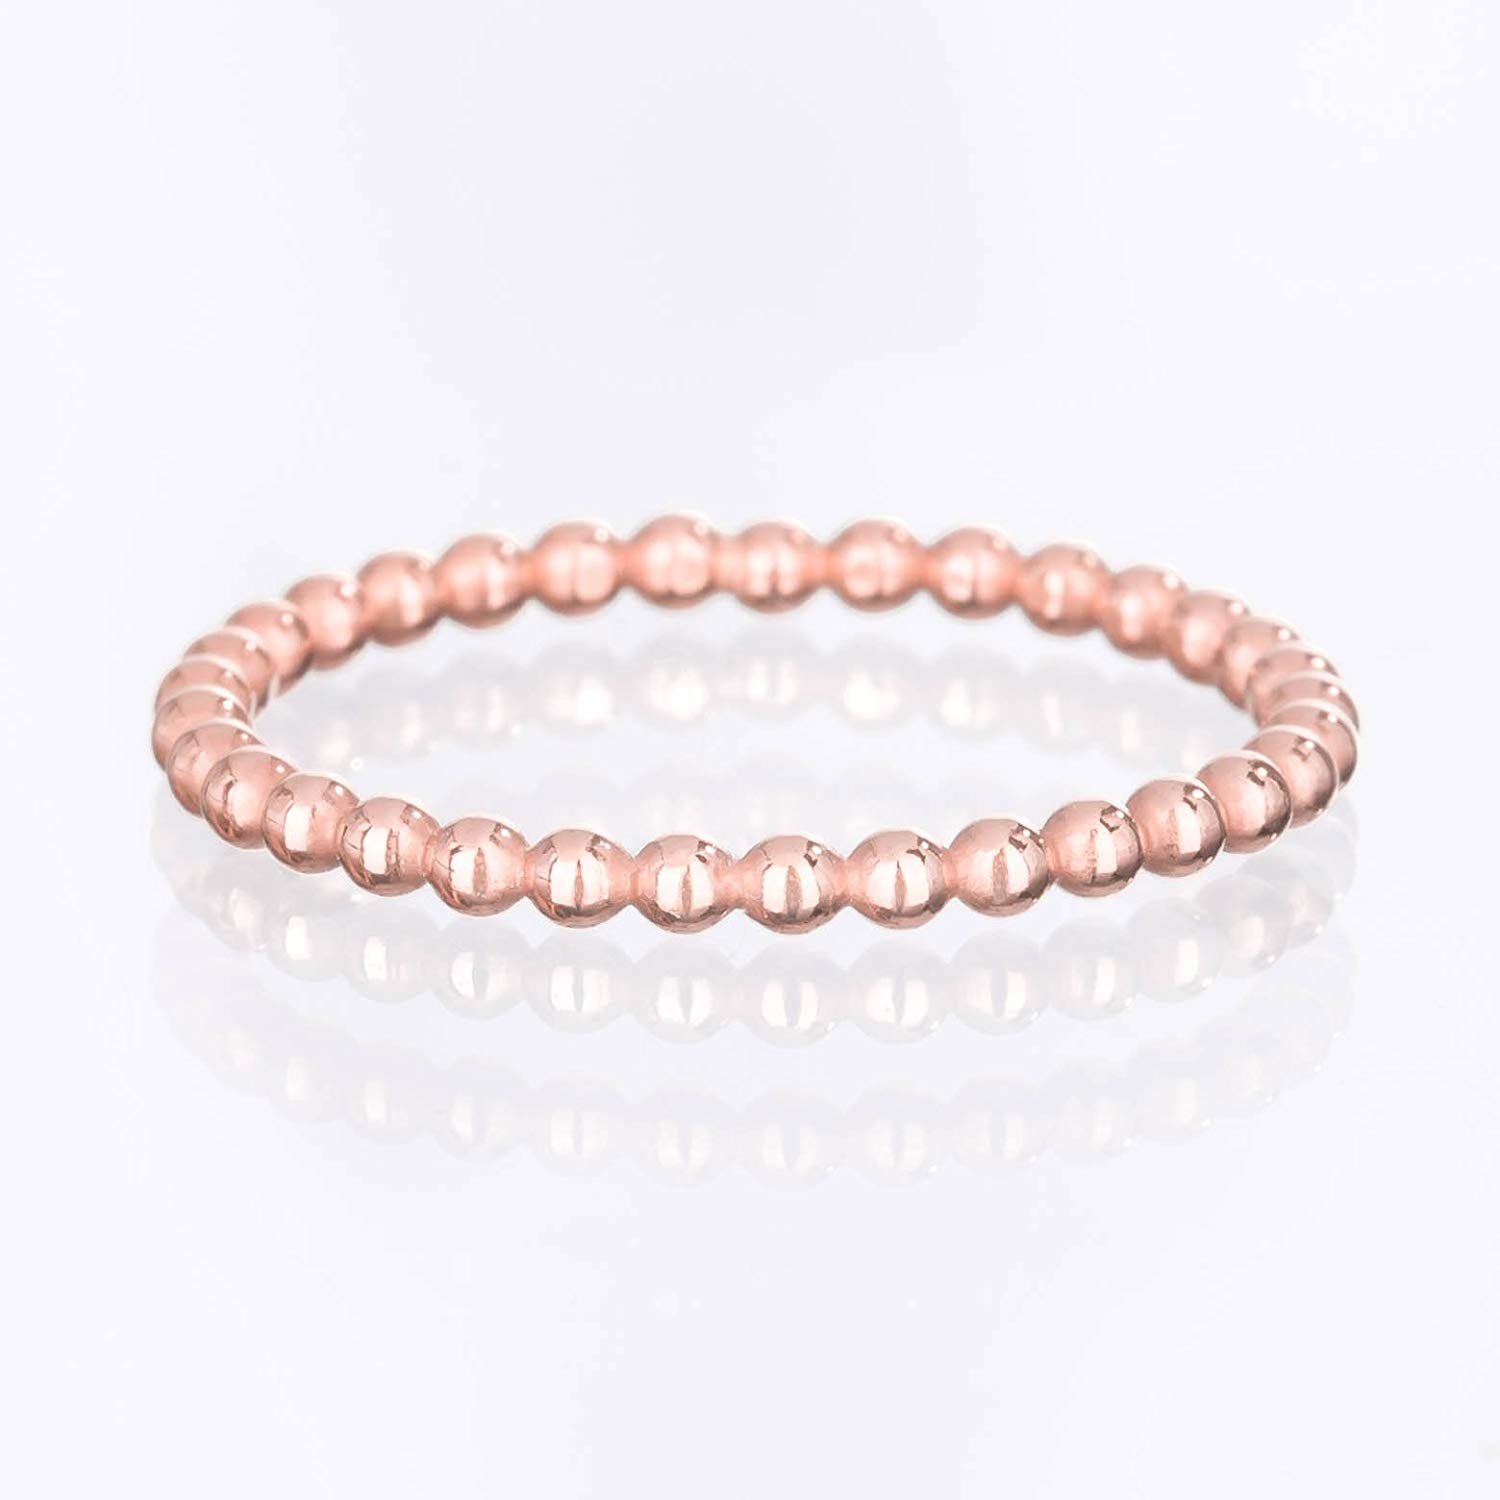 8f63575f0a Get Quotations · Dotted Stacking Ring, Size 8, 14k Rose Gold Filled with 24k  Dip